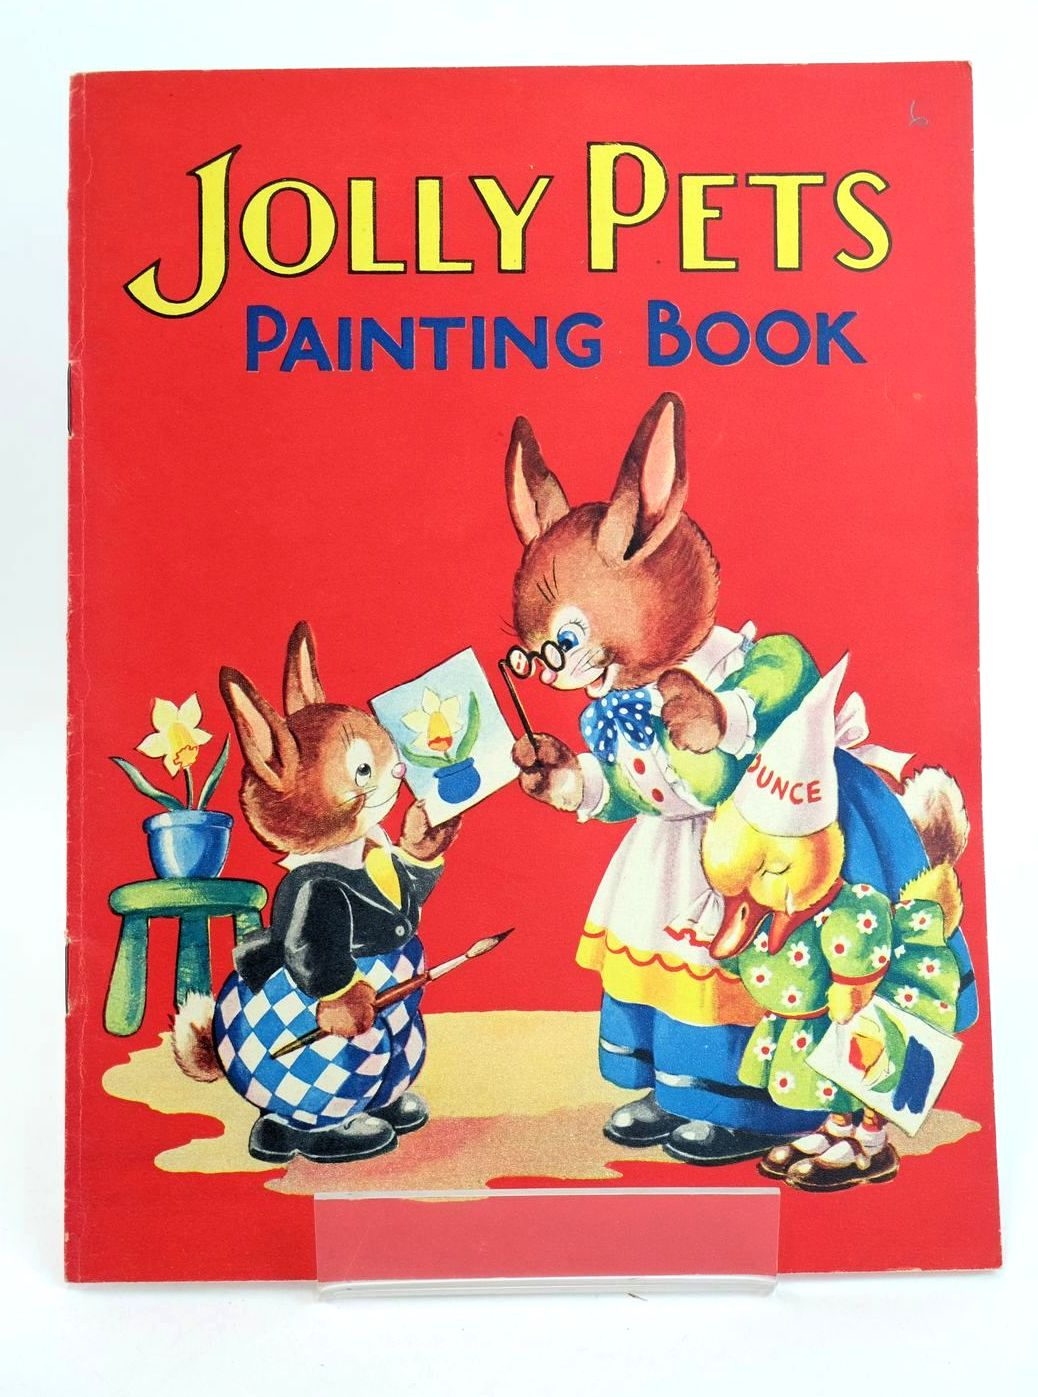 Photo of JOLLY PETS PAINTING BOOK published by Birn Brothers Ltd. (STOCK CODE: 1318567)  for sale by Stella & Rose's Books